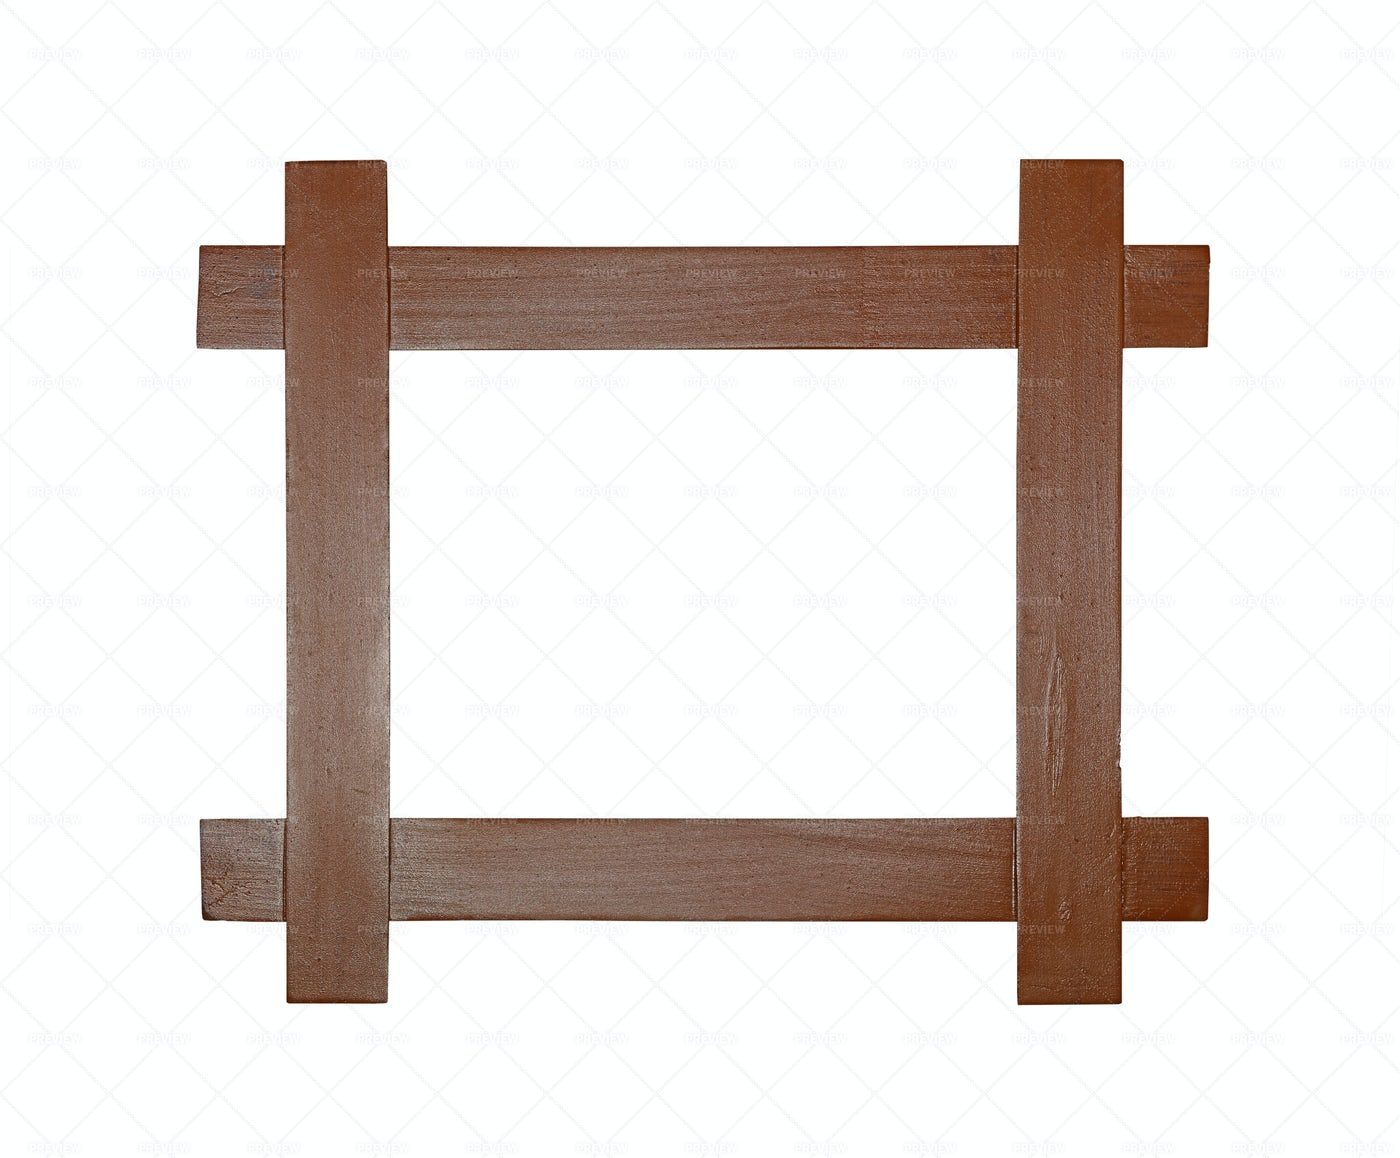 Crossed Wooden Photo Frame: Stock Photos